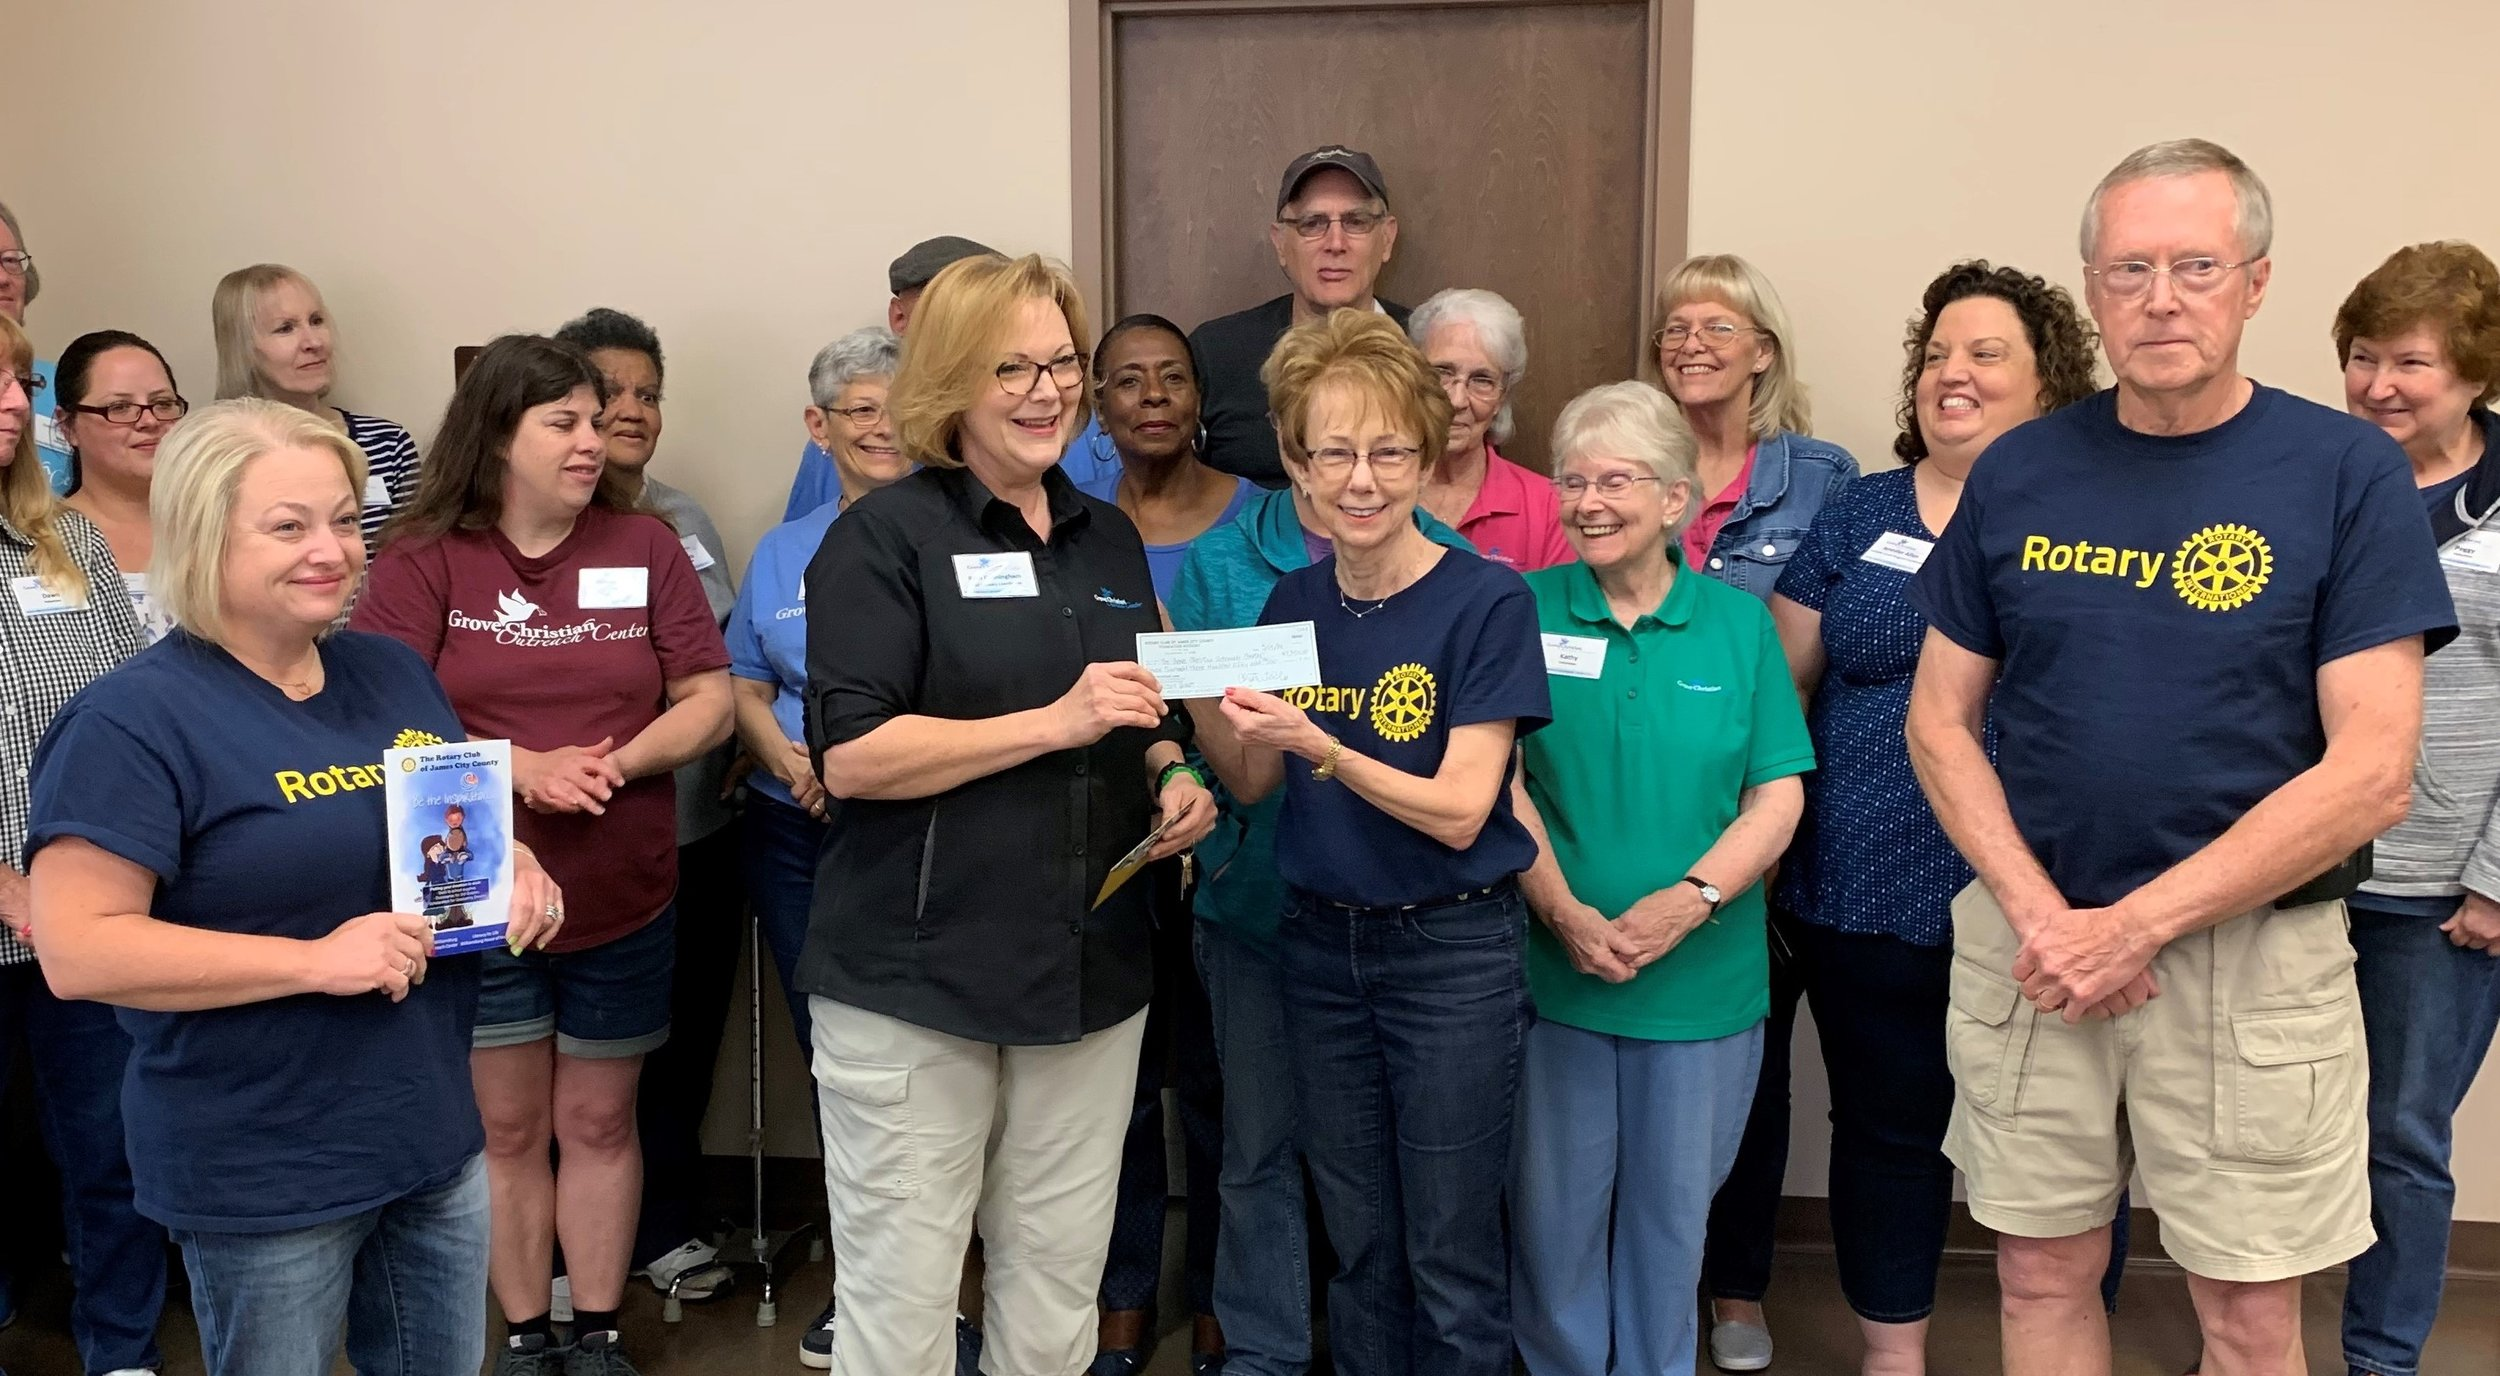 JCC Rotarians Present Grant to Grove Christian Outreach. JCC Rotary and Satellite Club members Amy Leadbetter, Neva Lynde and Roger Saunders presented a $7,350 check to Ruth Cunningham, Grove Christian Outreach, to fund 200 food baskets for their holiday food basket program.